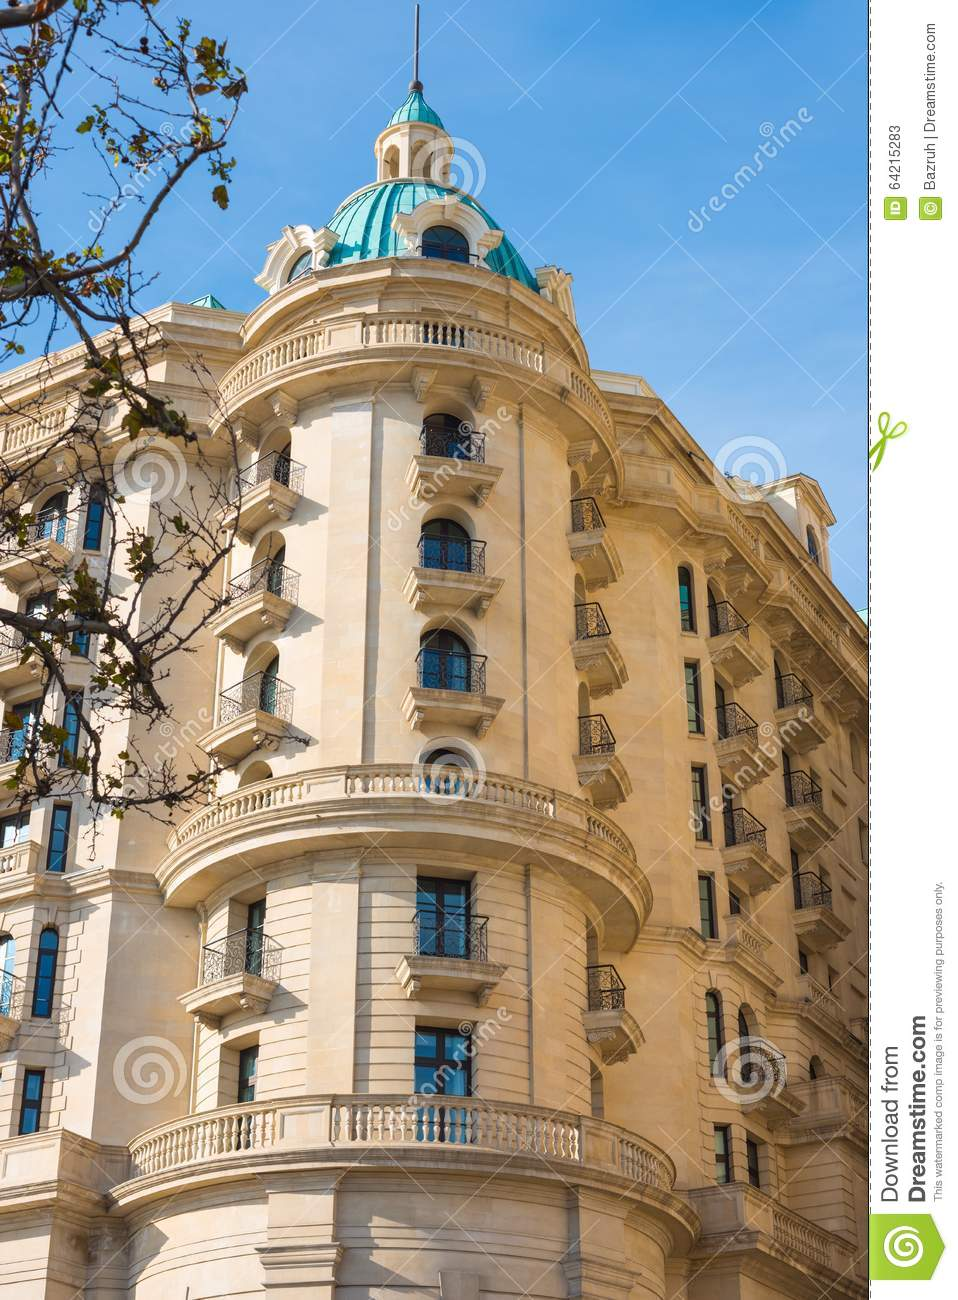 Nice high modern building stock photo image 64215283 for Nice building images